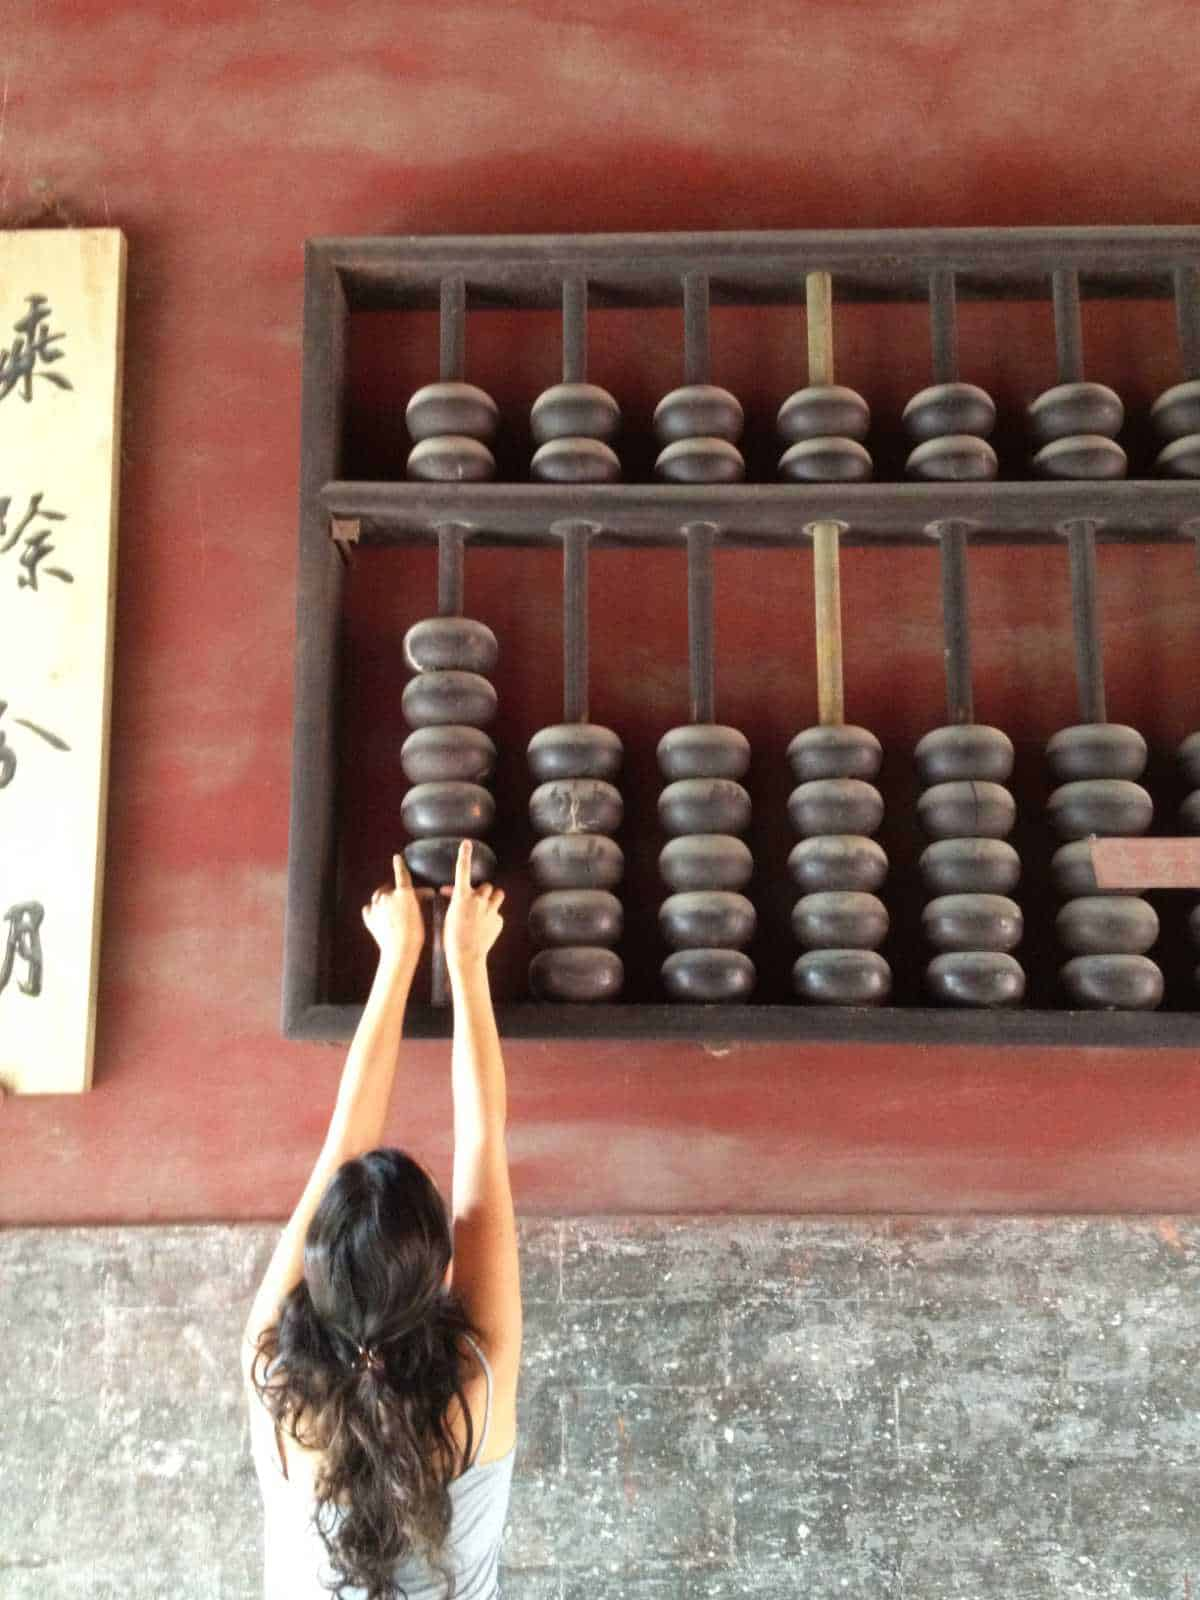 Woman moving a giant abacus.